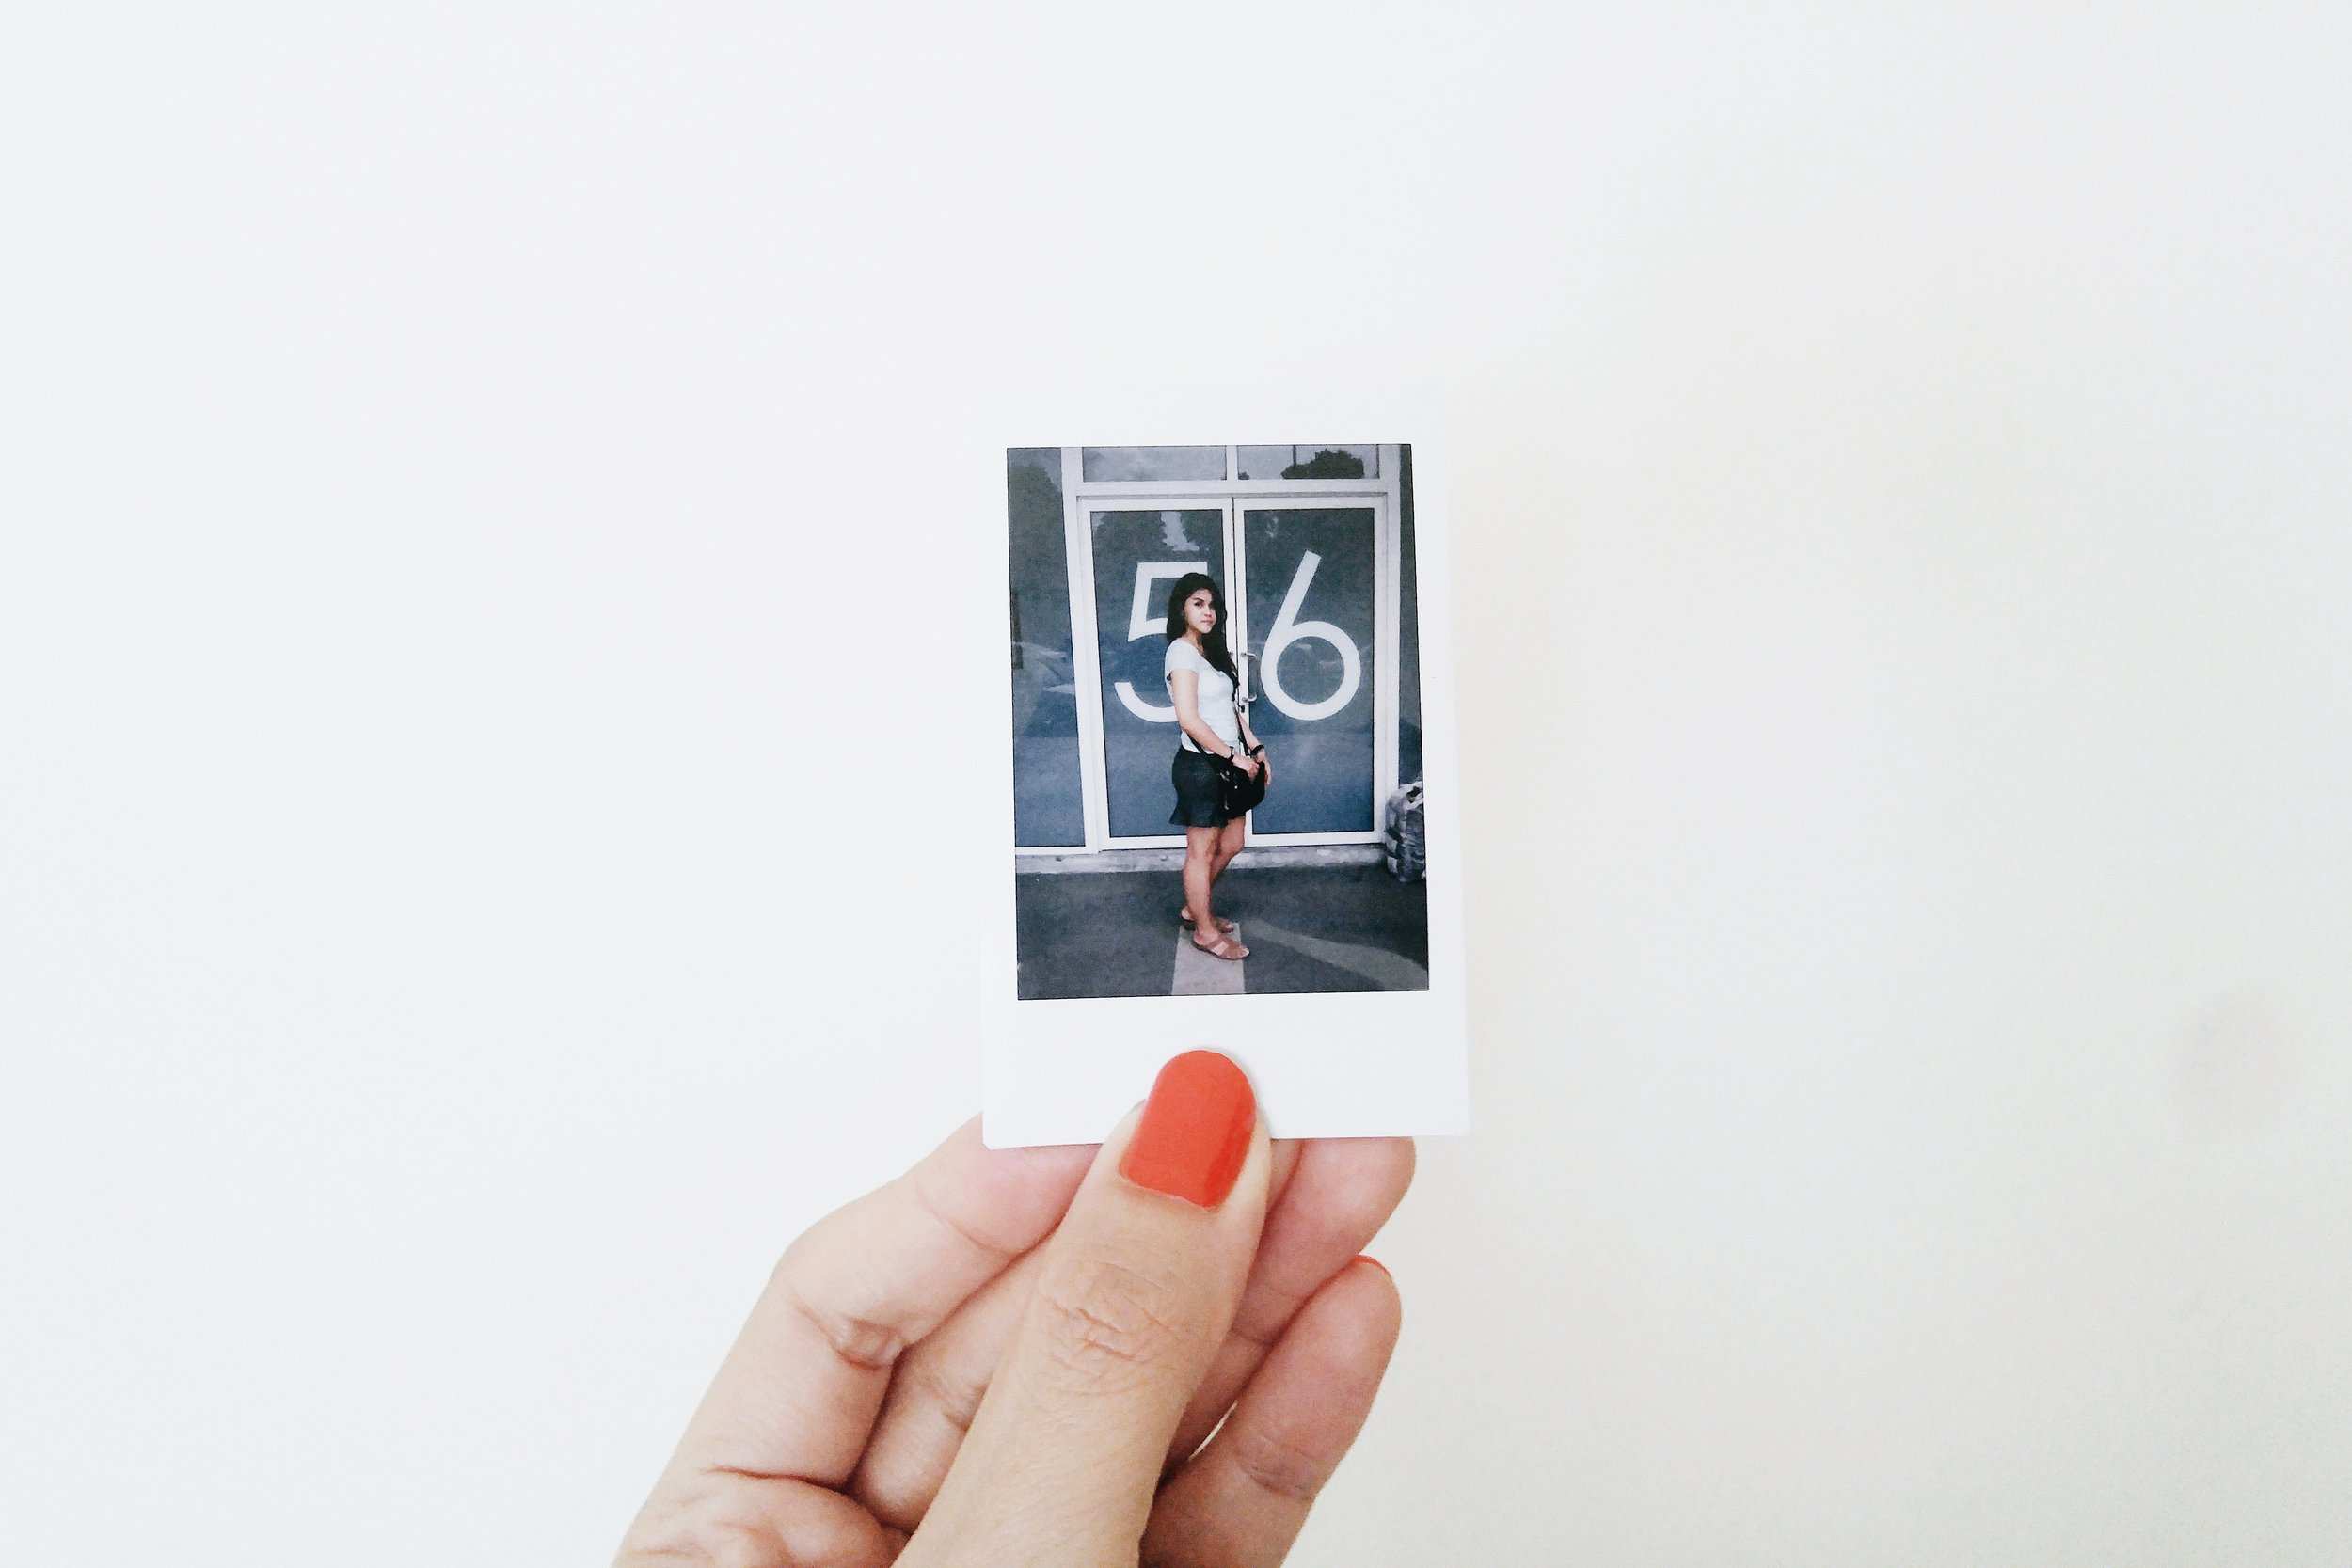 the start to my week - an hour at the bank before fooling around with my instax camera. Ken refused to be the subject, as always.